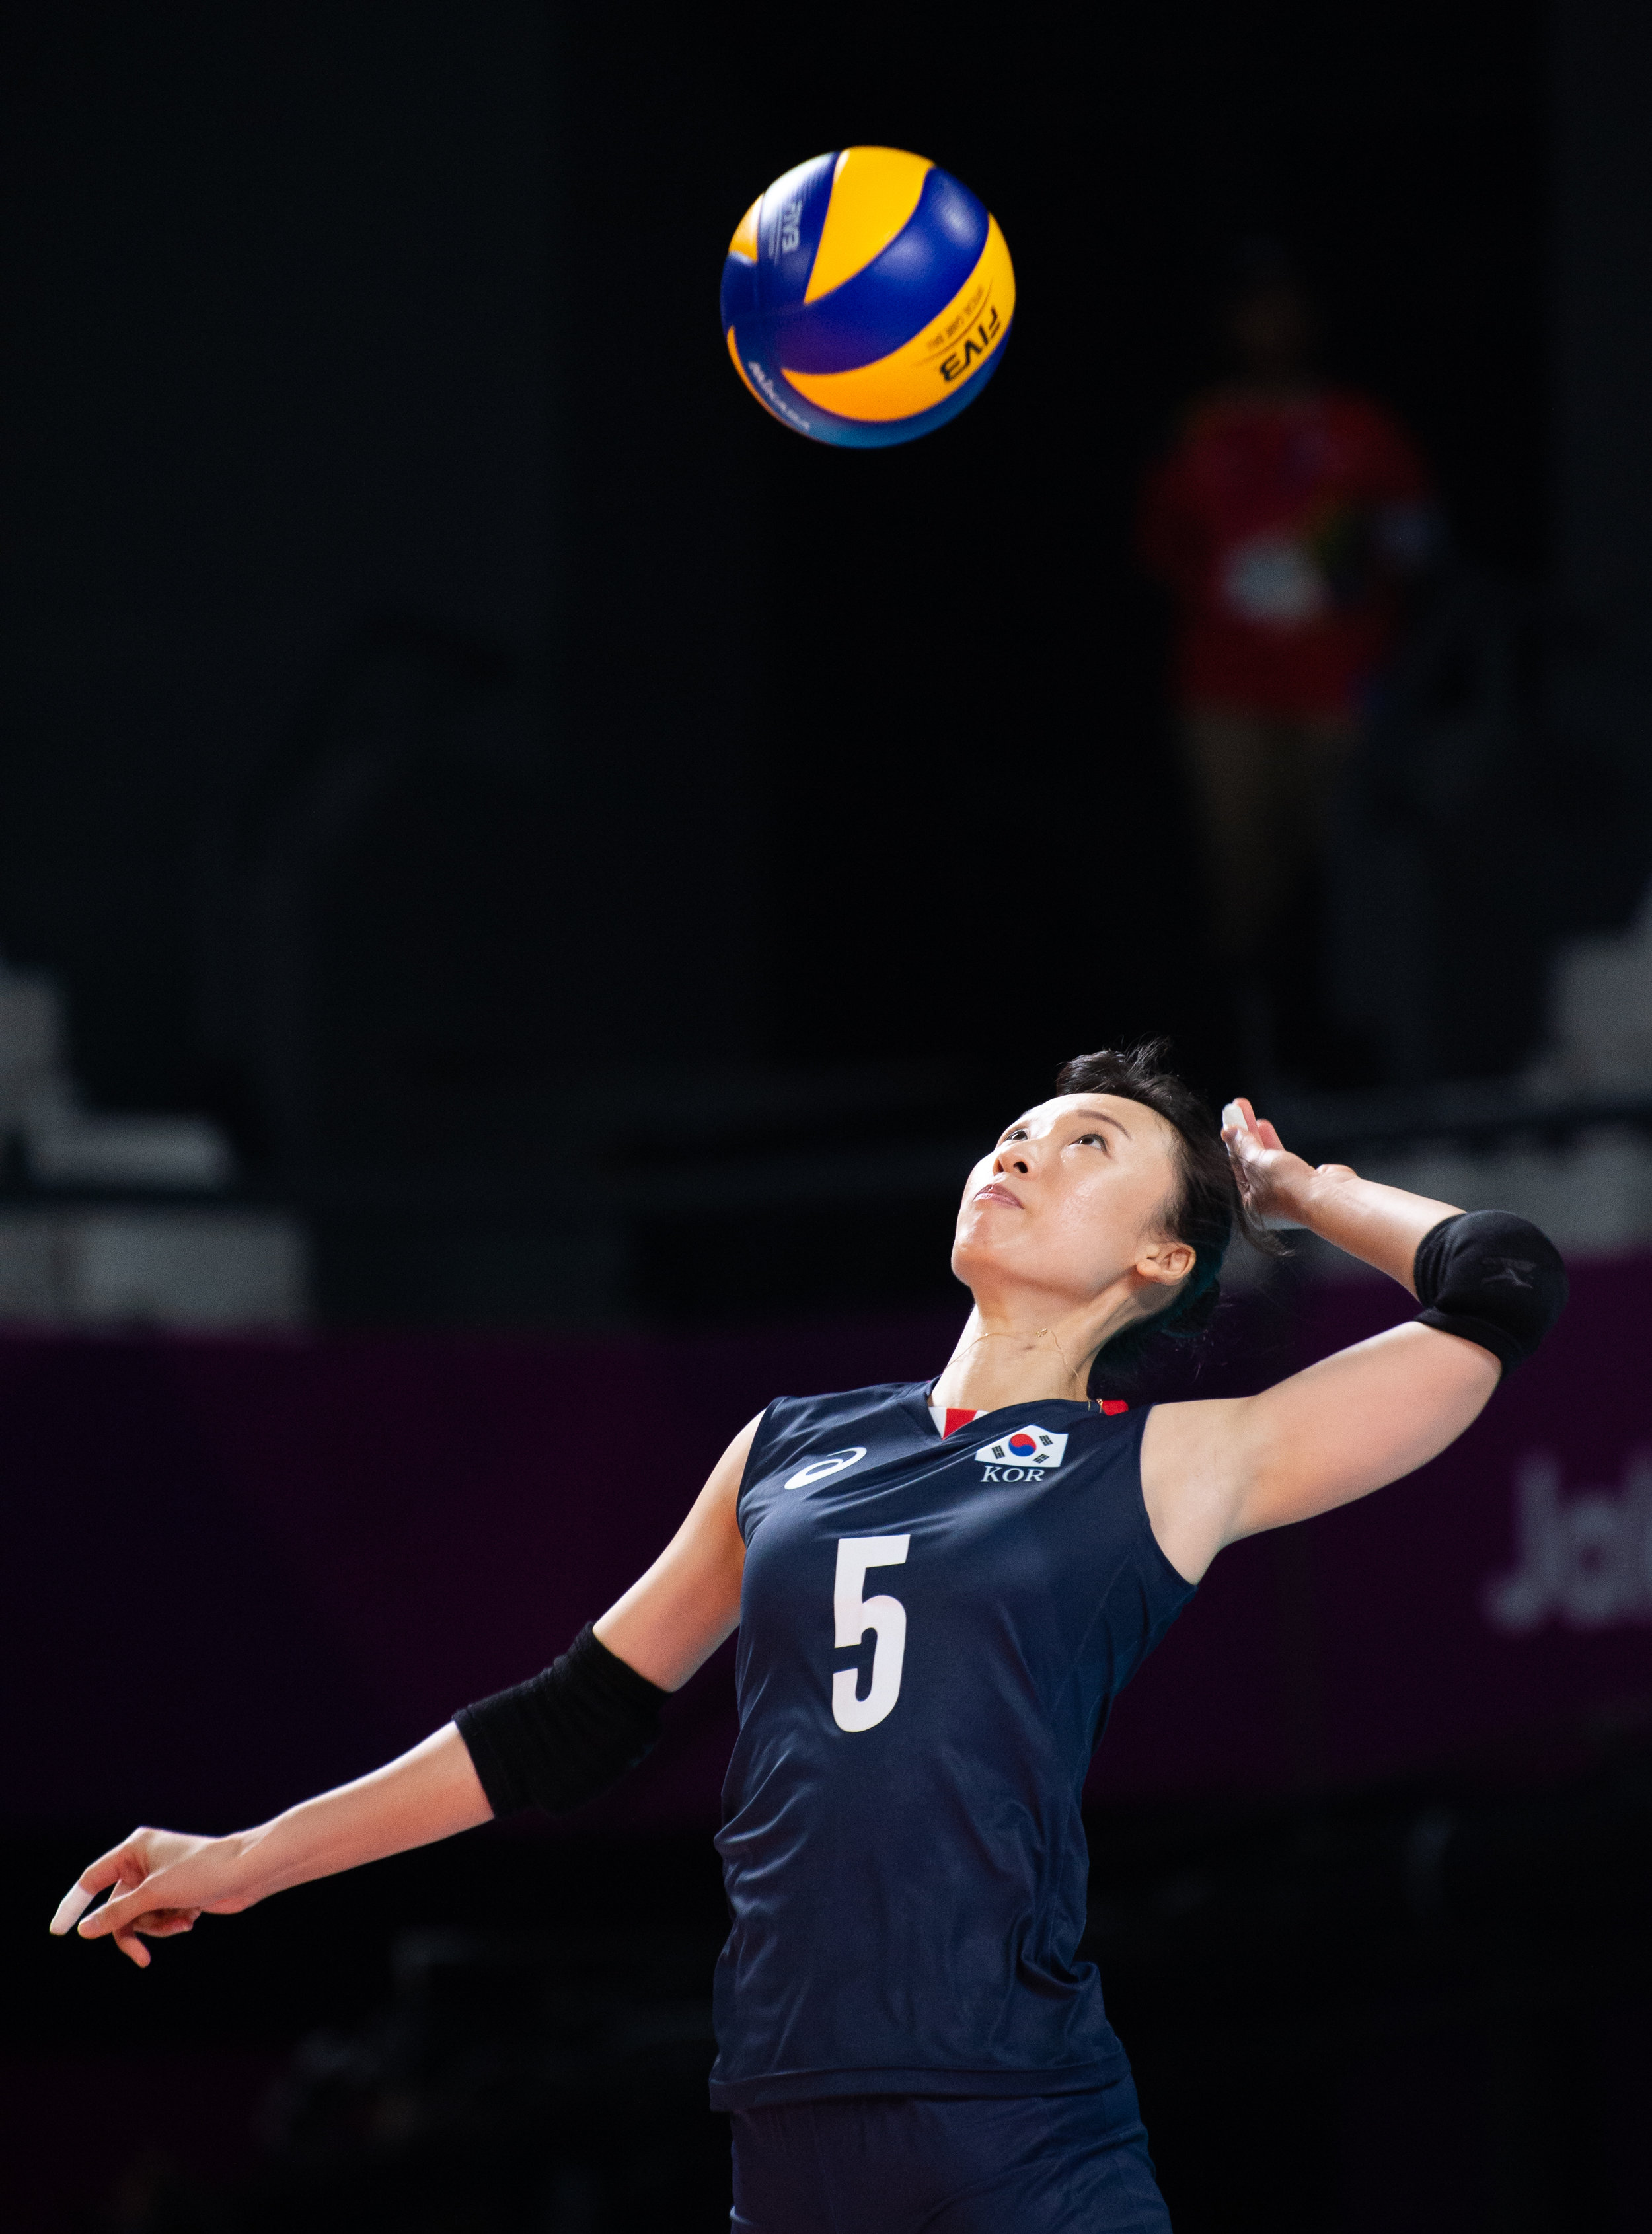 A Korean player serves during the Women's Volleyball match against Vietnam of the Asian Games at the Gelora Bung Karno Sports Complex.